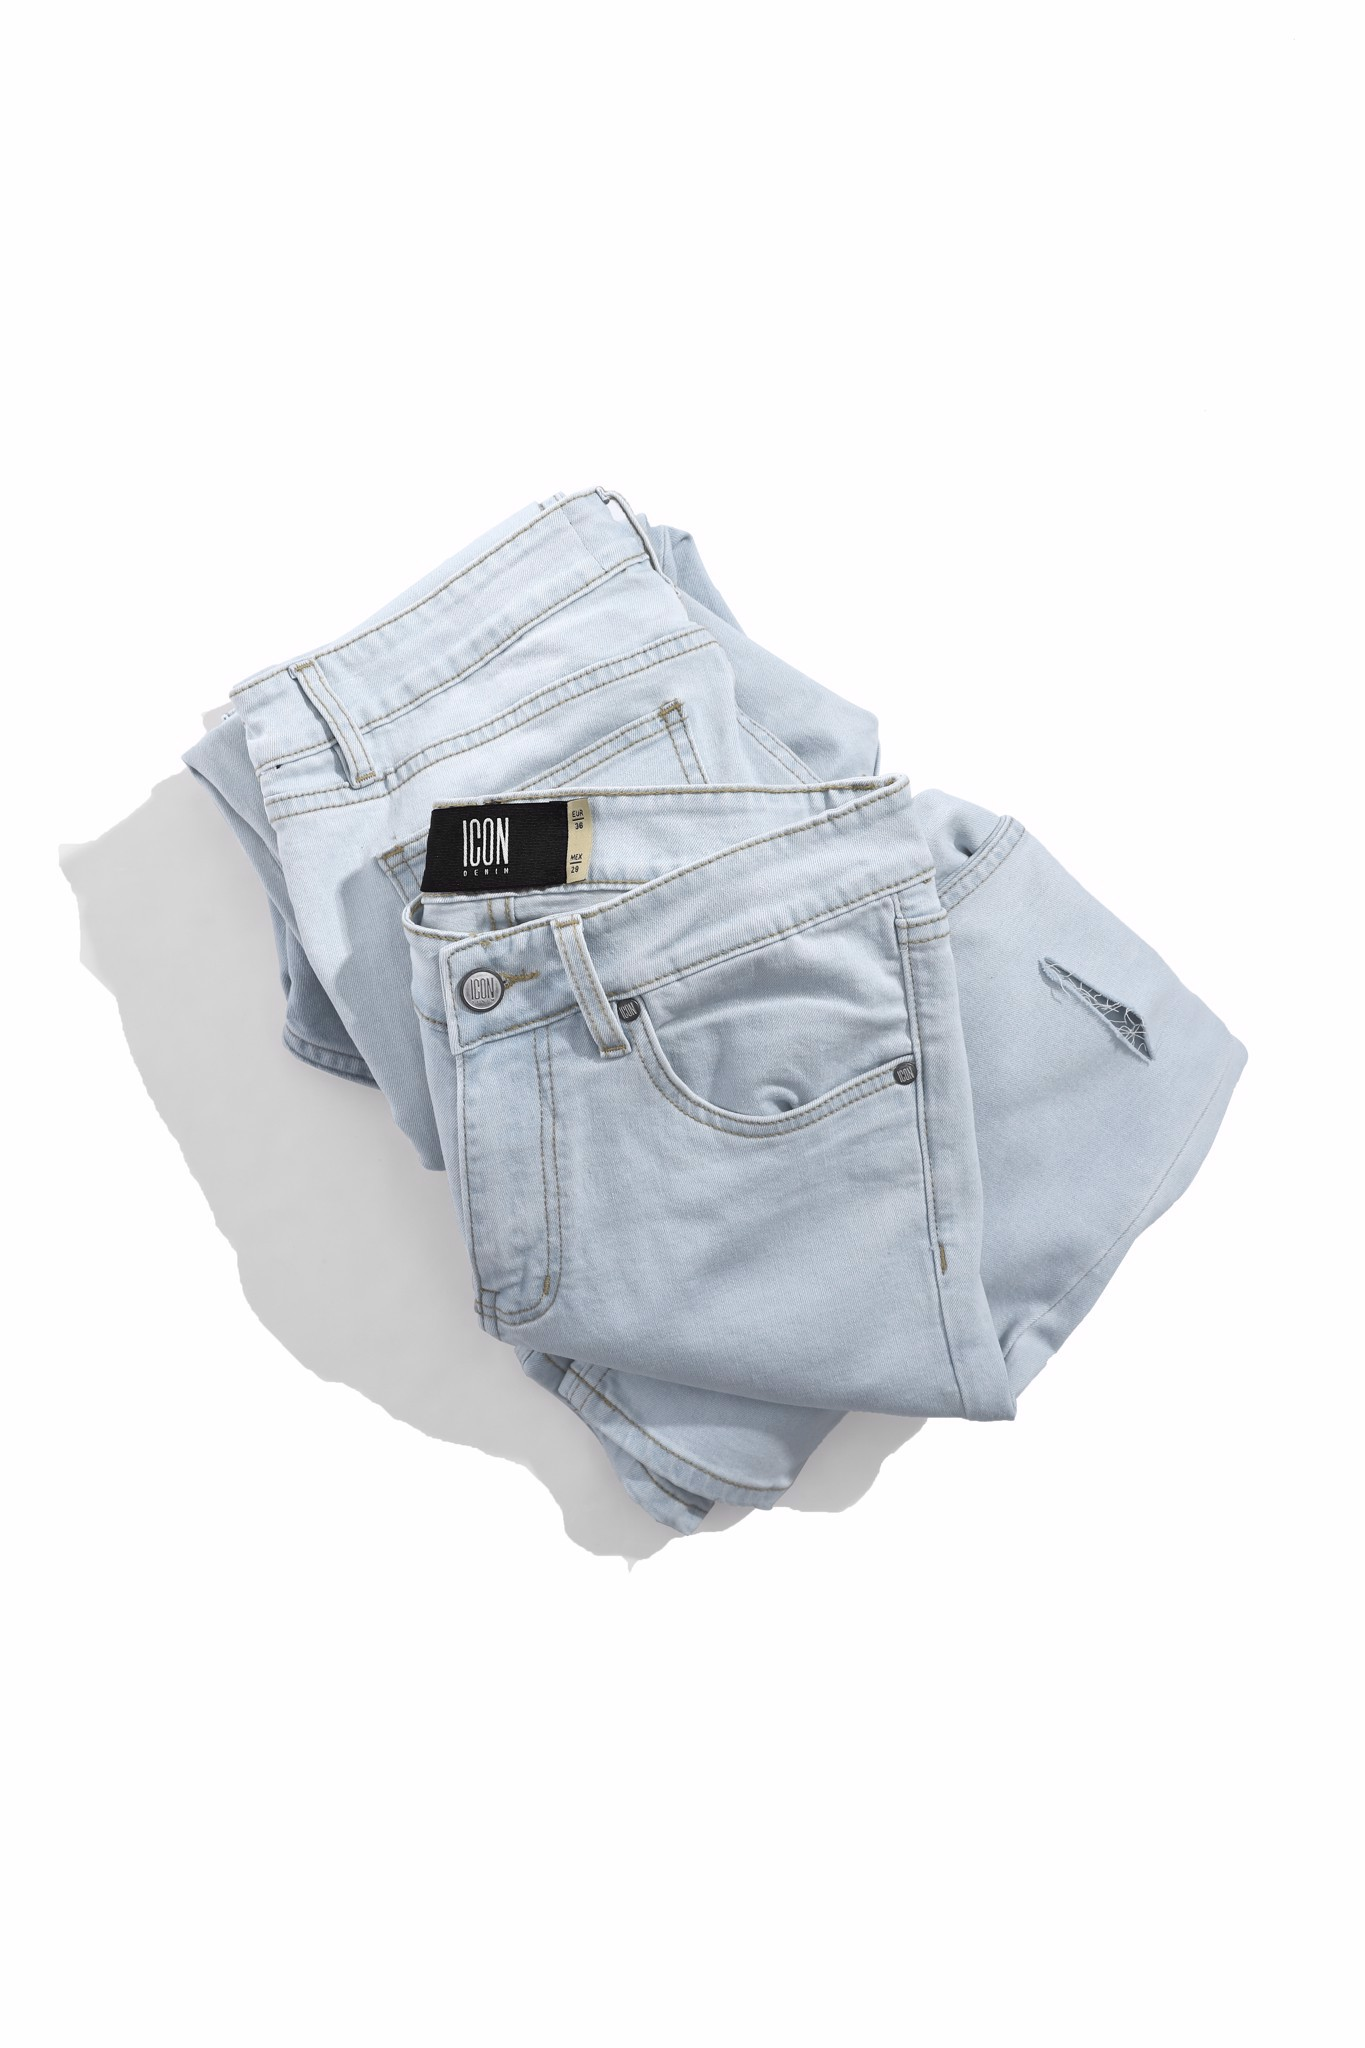 Quần Jean Skinny ICON Light Wash Rách Gối